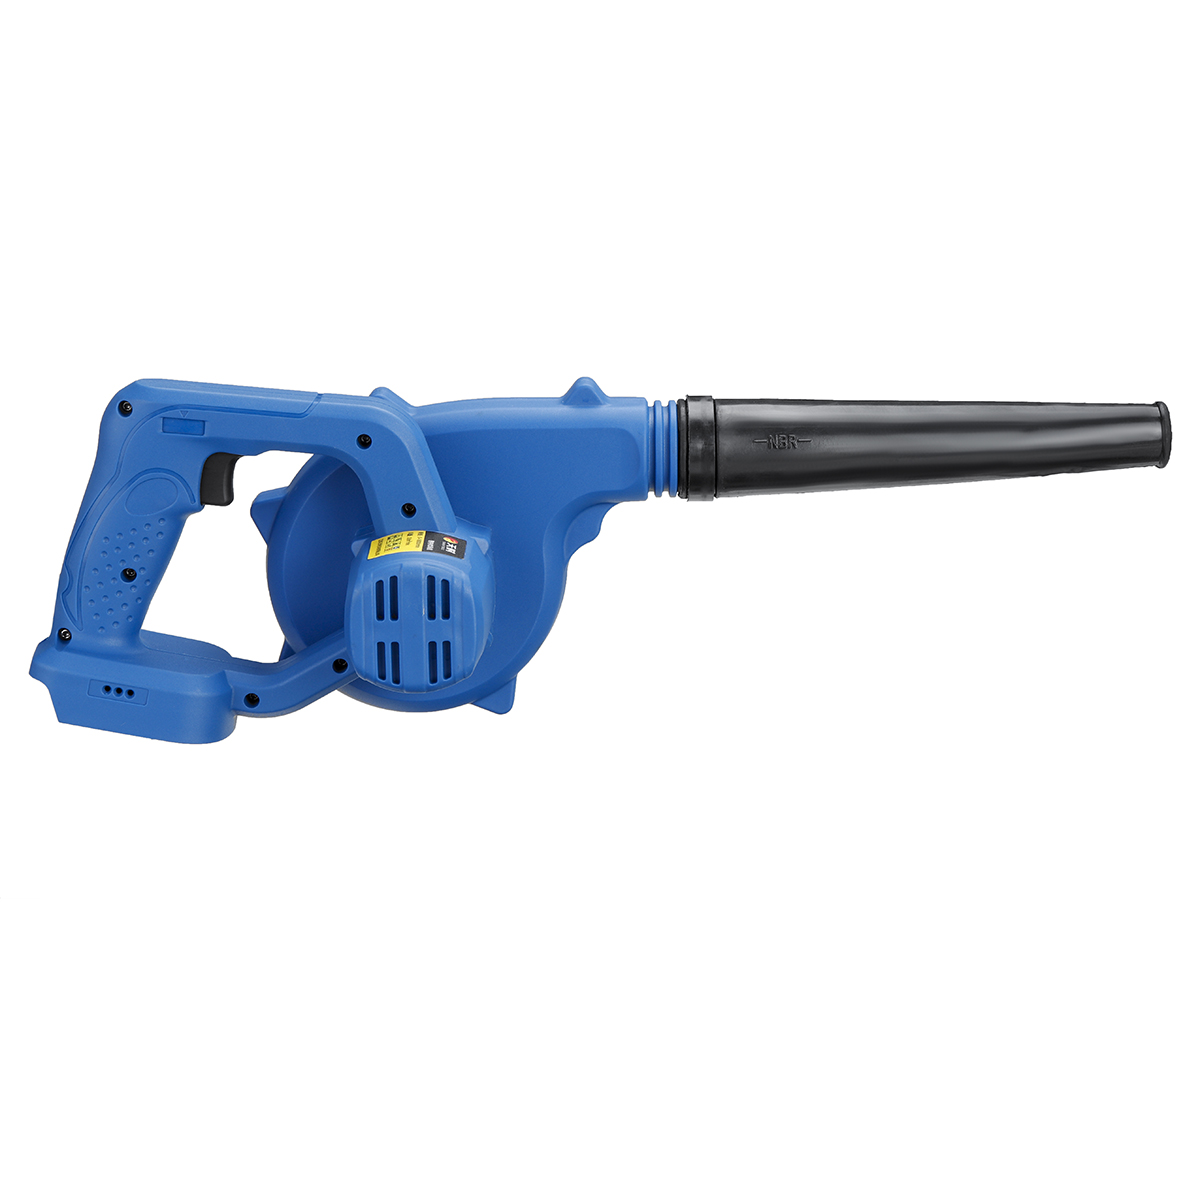 18V Cordless Electric Air Blower Vacuum Cleaner Suction Blower Tool For Makita 18V Li-ion Battery